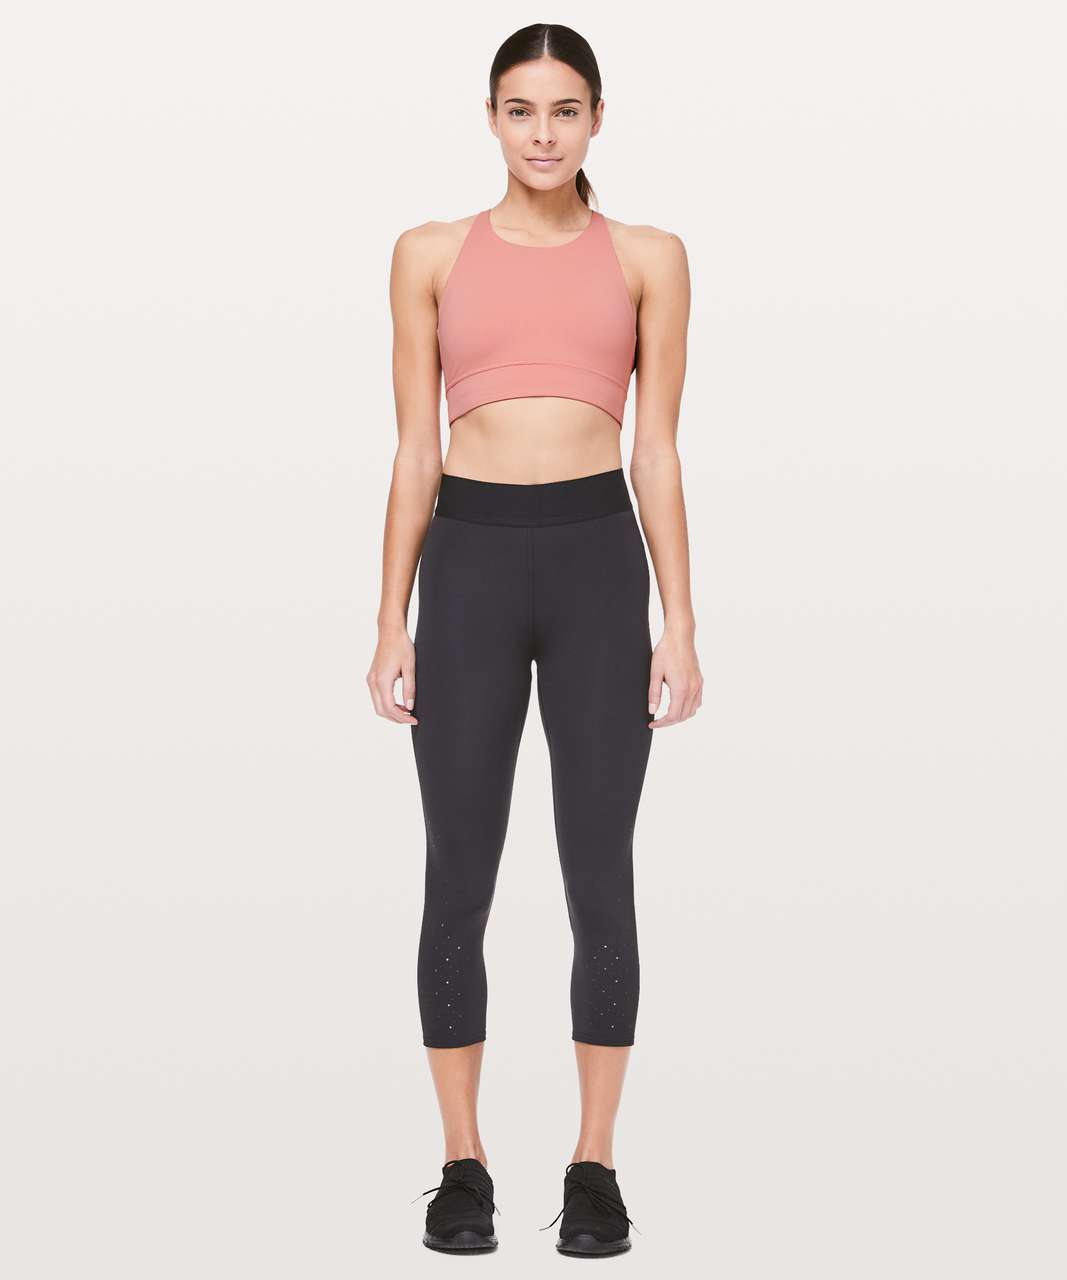 Lululemon Ride & Reflect Bra *lululemon X SoulCycle - Cameo